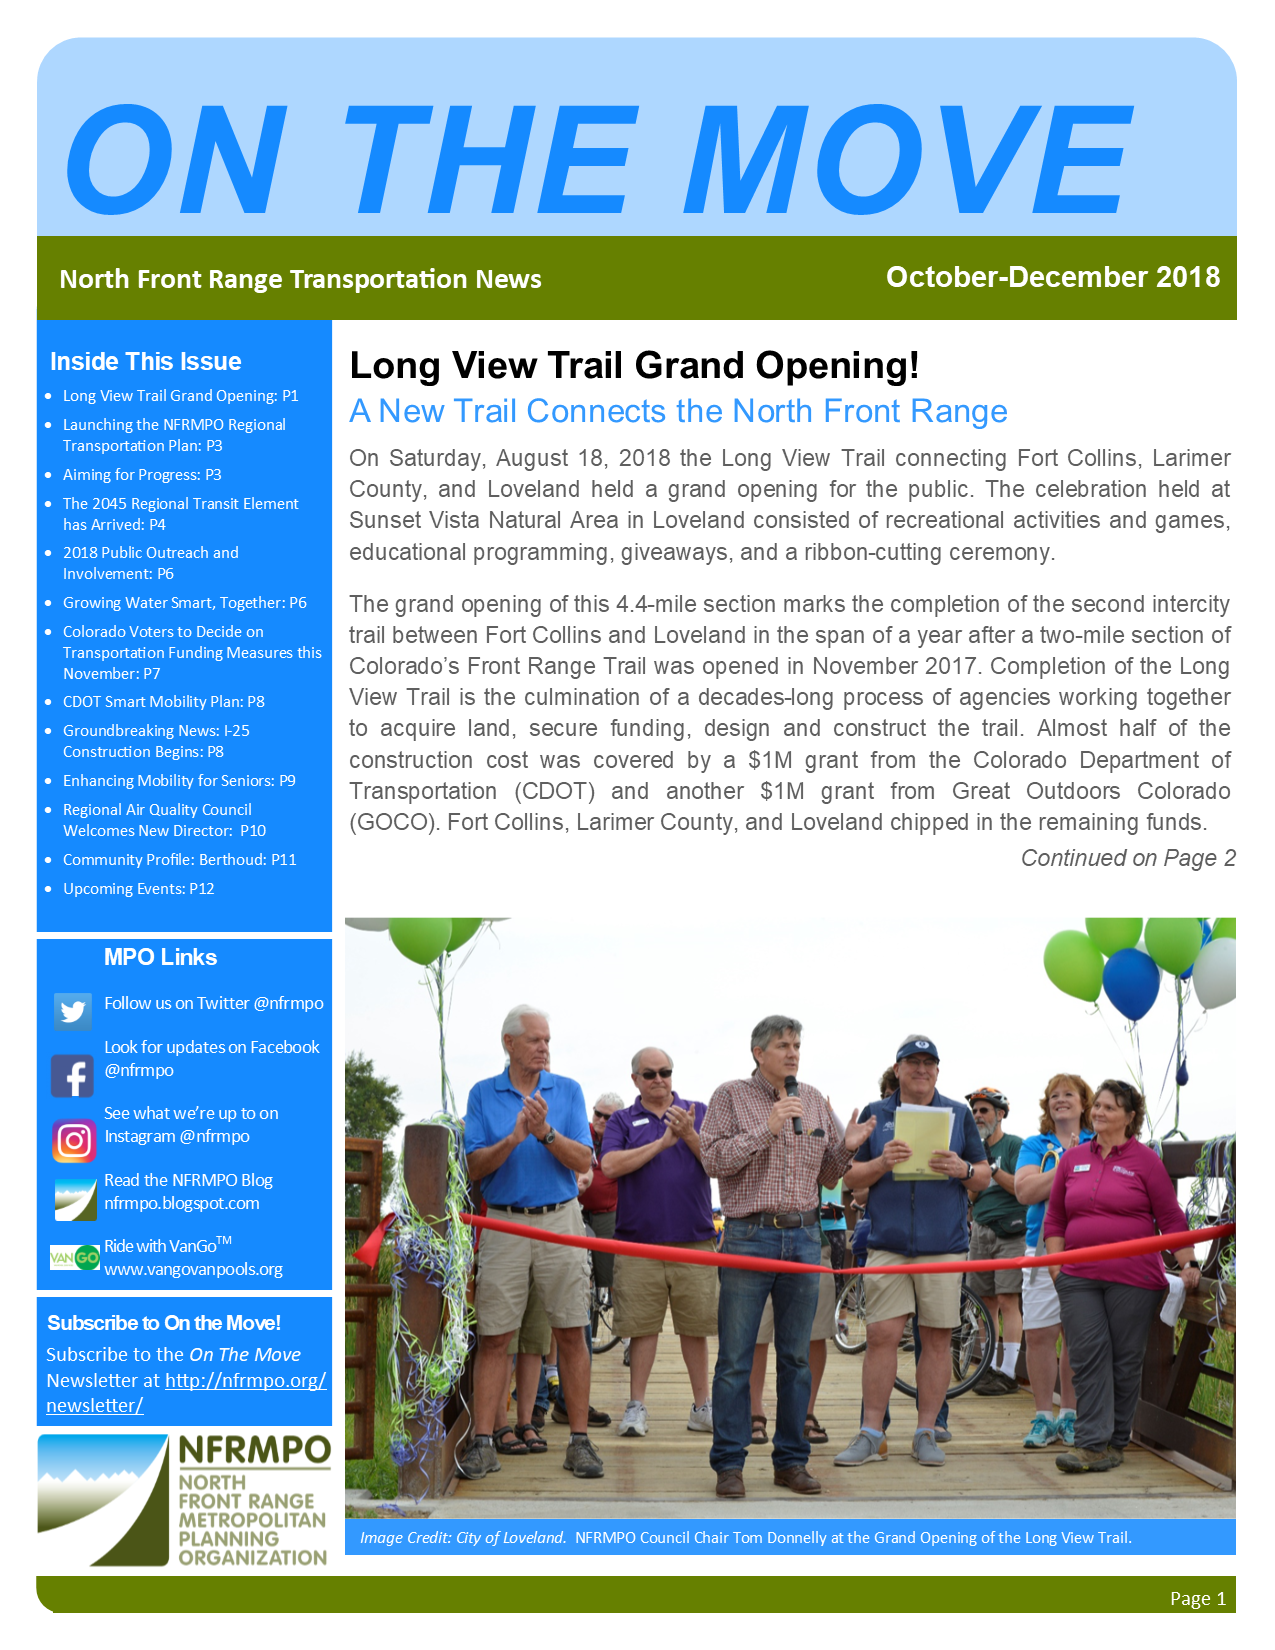 First page of On The Move Newsletter, October-December 2018 edition